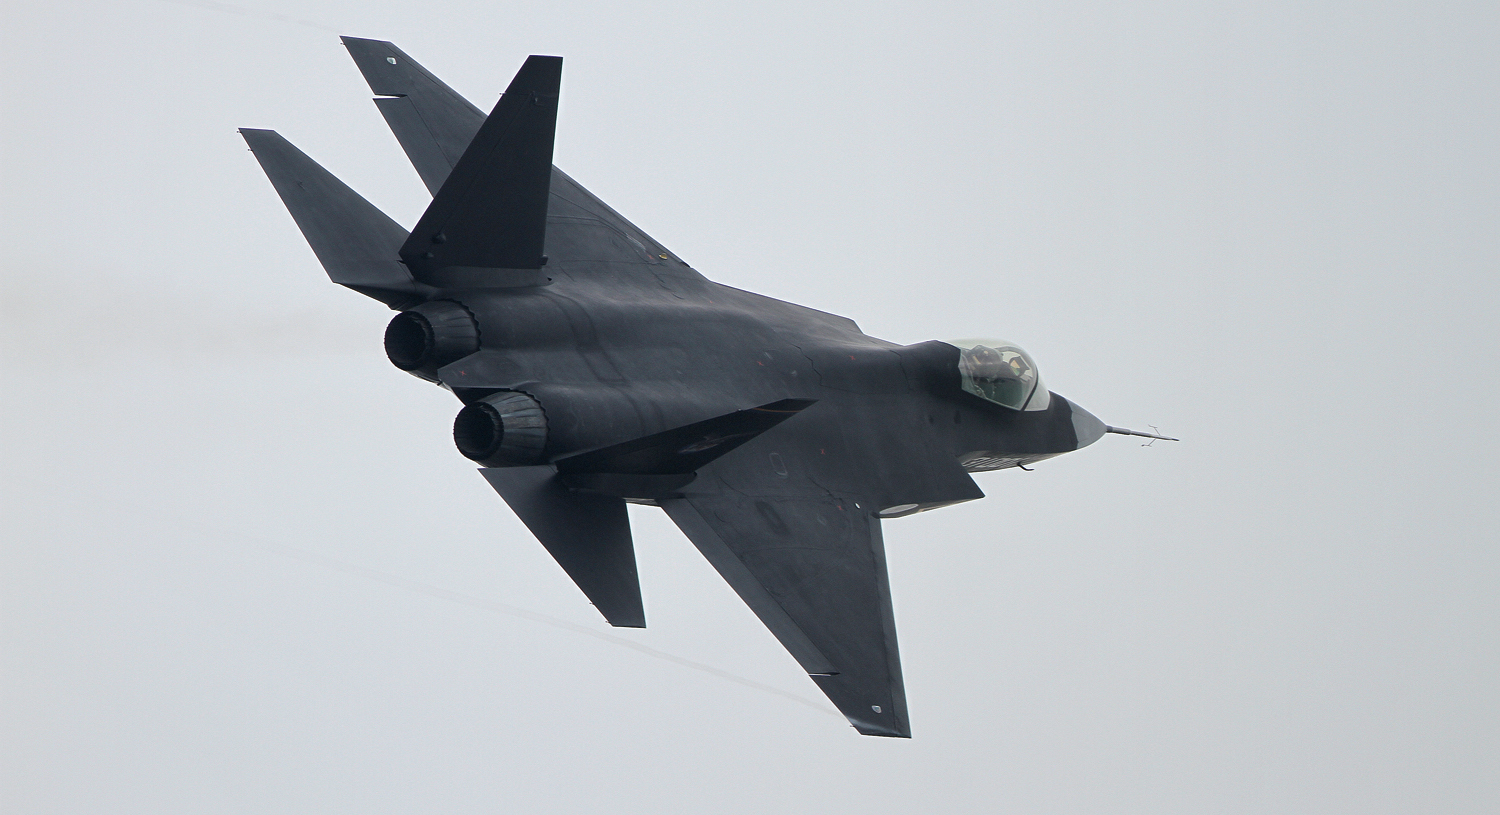 China Develops New Engines for J-31 Stealth Fighter - Reports